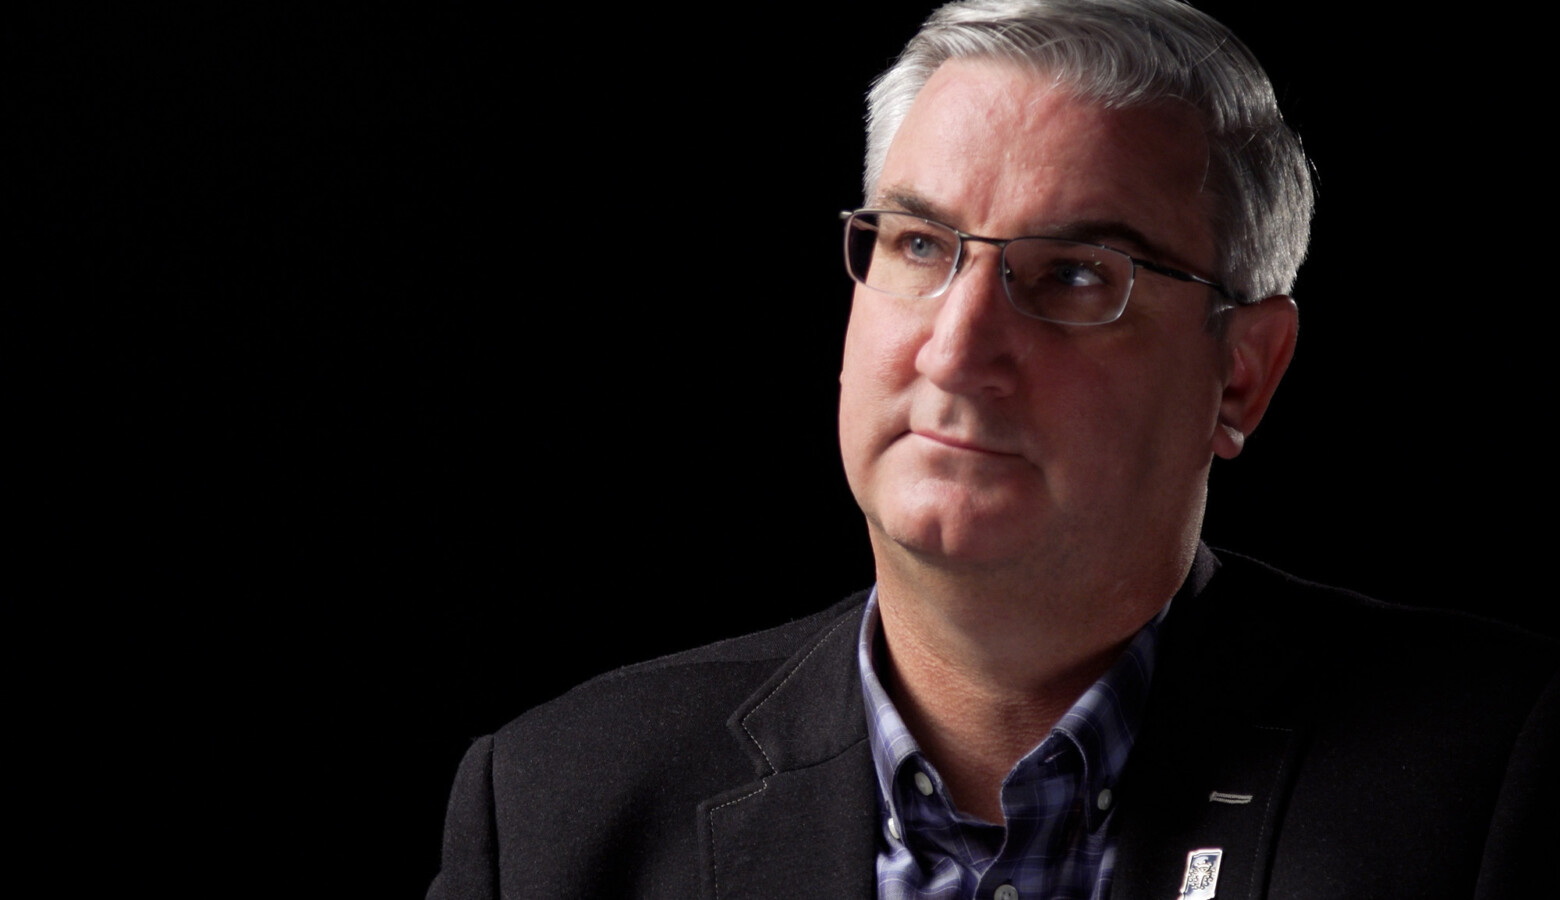 Gov. Eric Holcomb is running for a second term and looks to continue Republican control of the governor's office that stretches back to 2005. (Alan Mbathi/IPB News)